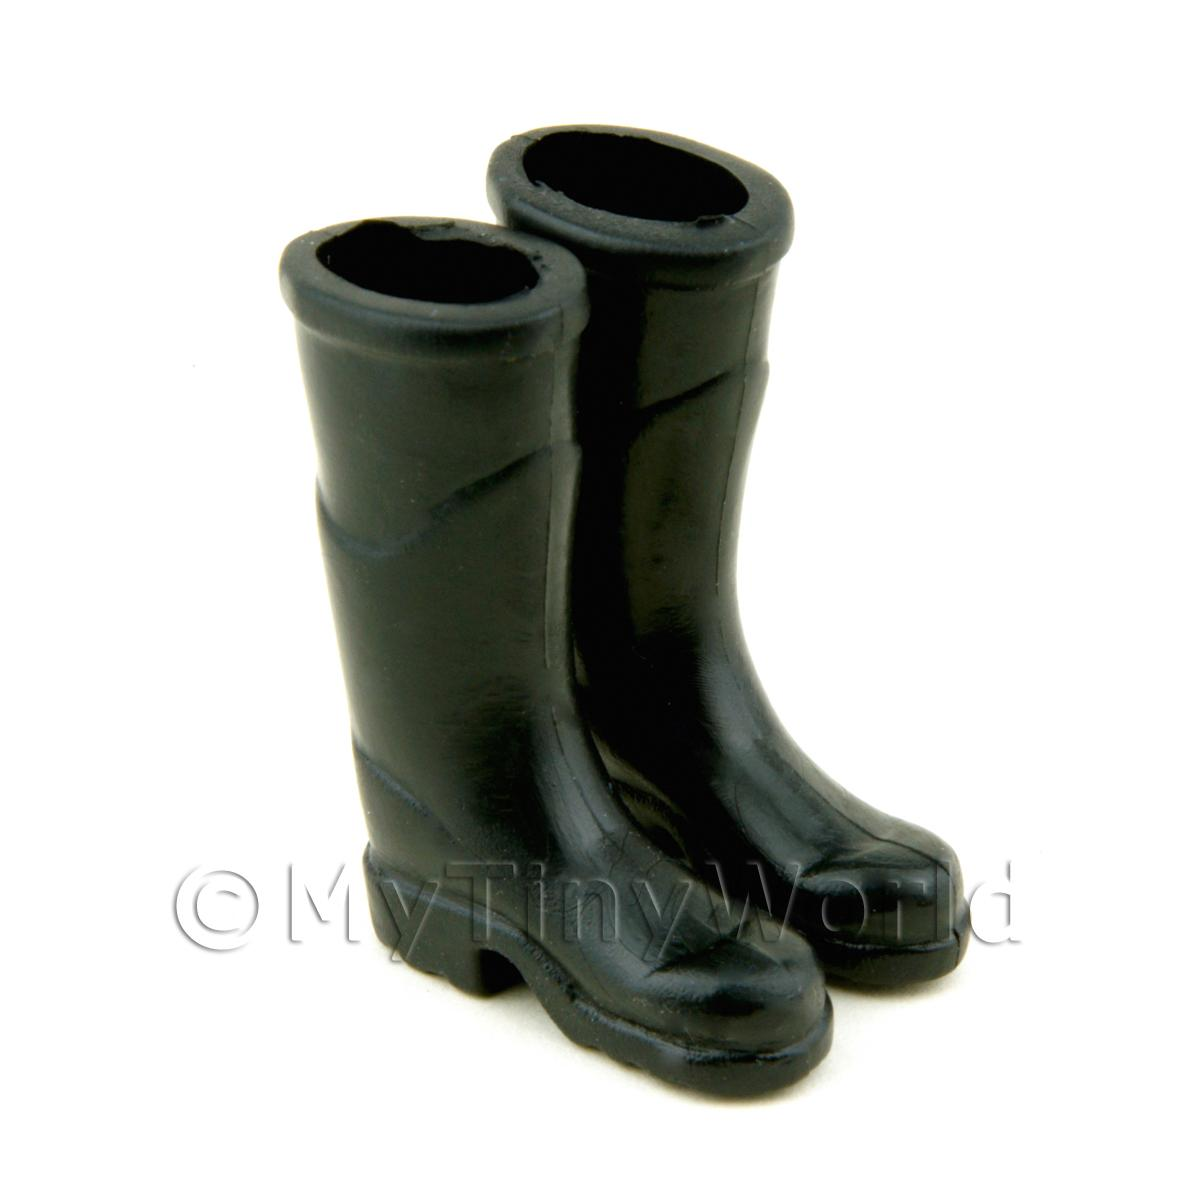 Dolls House Miniature Pair of Rubber Wellington Boots